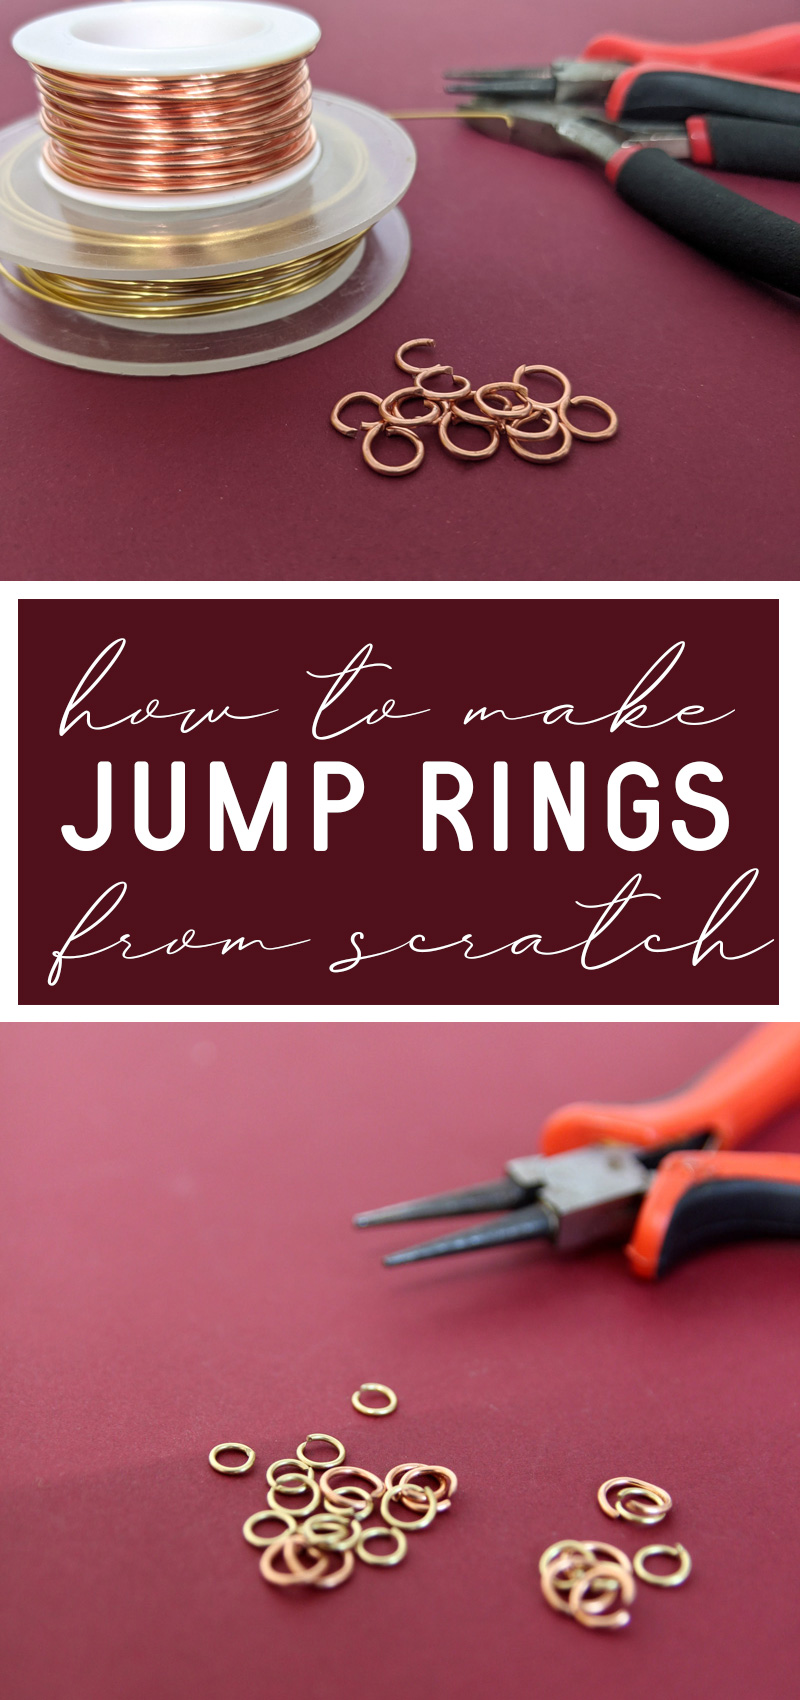 How to make jump rings hero collage